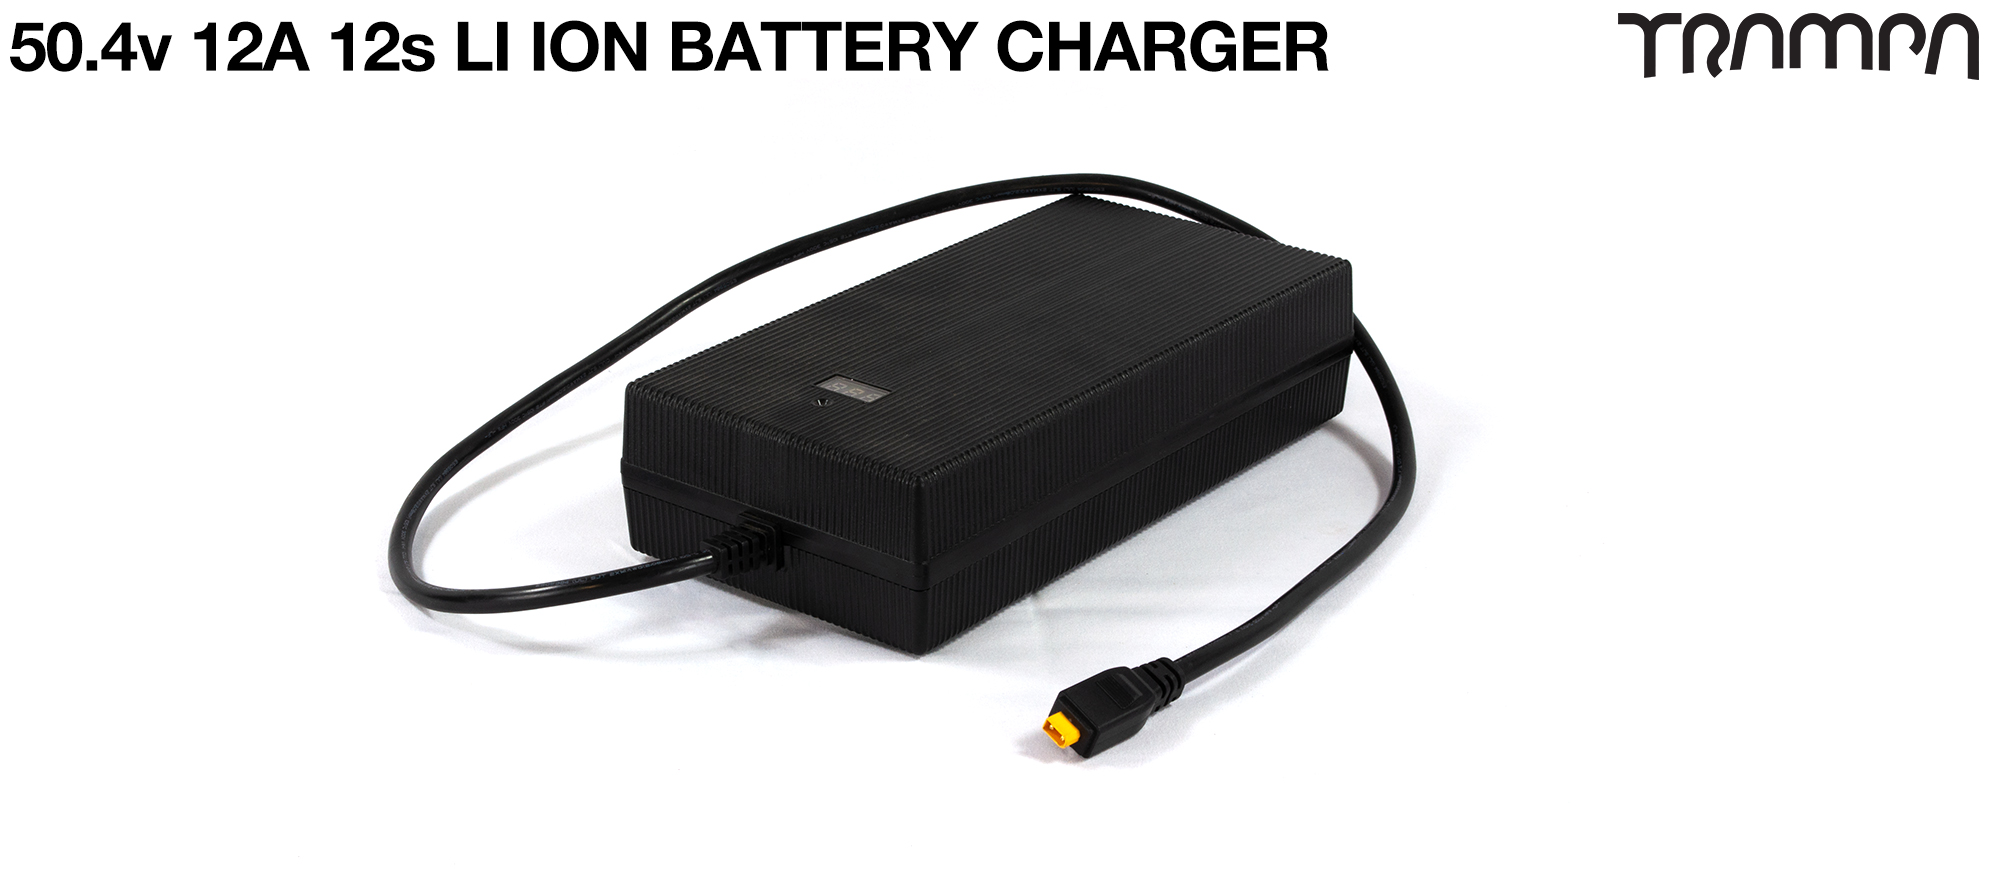 50.4 10A 12S LI ION BATTERY CHARGER